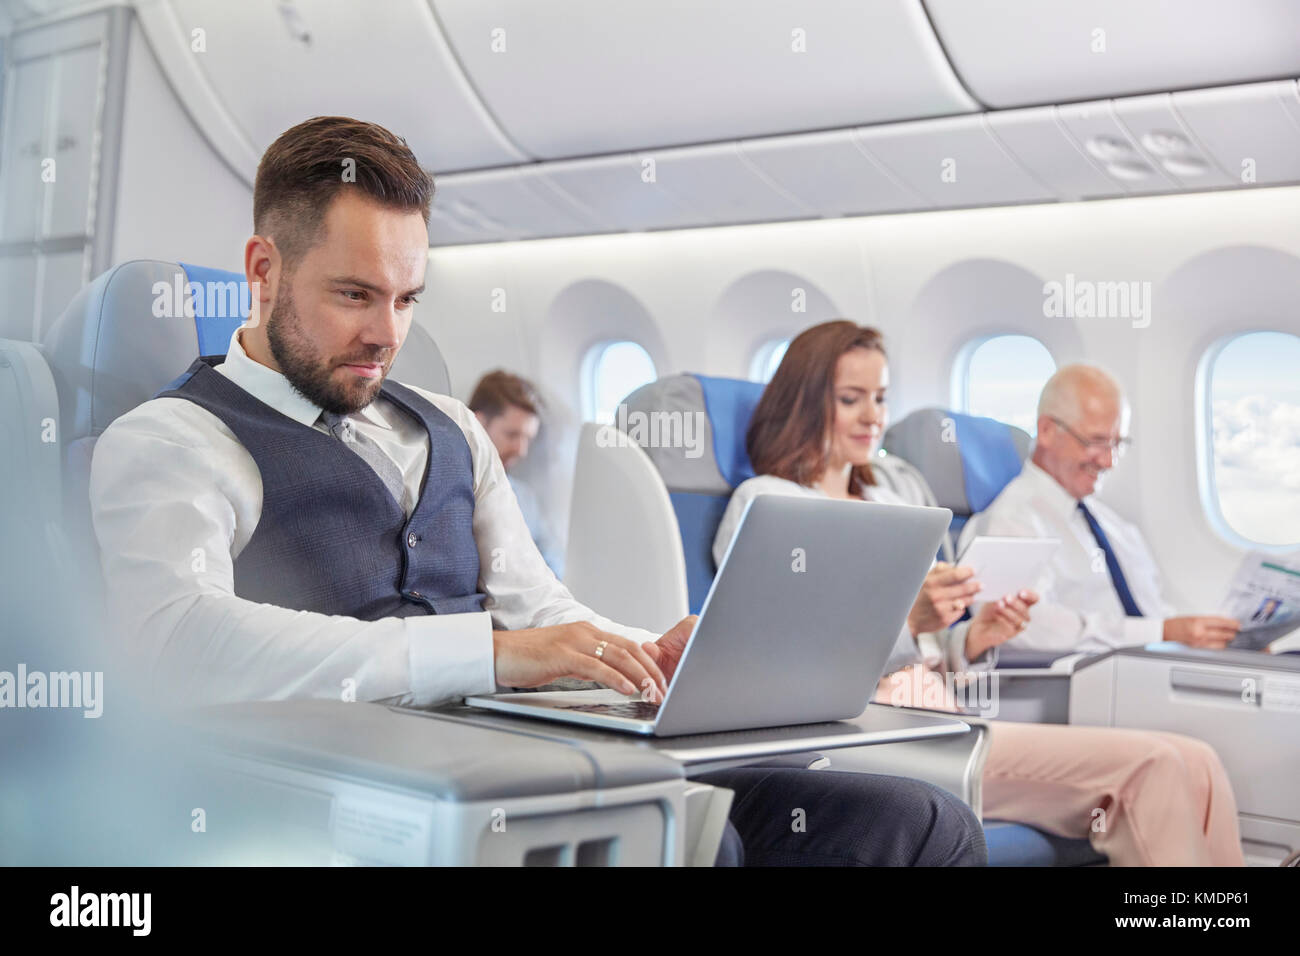 Businessman working at laptop on airplane - Stock Image